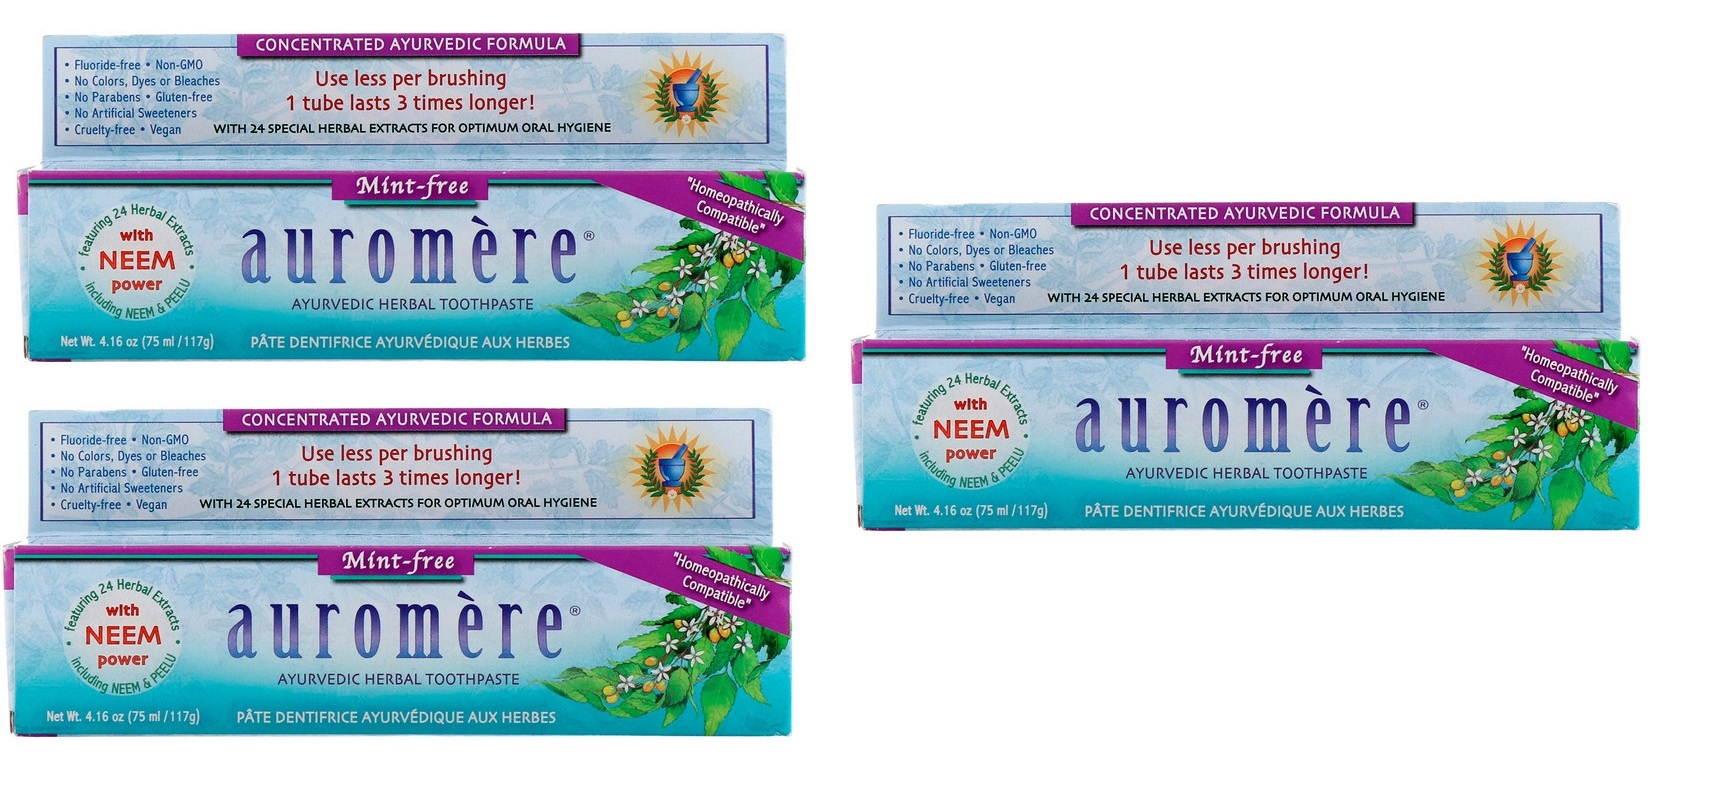 Dental Supps Auromere, Ayurvedic Herbal Toothpaste, Mint-free, 4.16 Oz, 3-pack